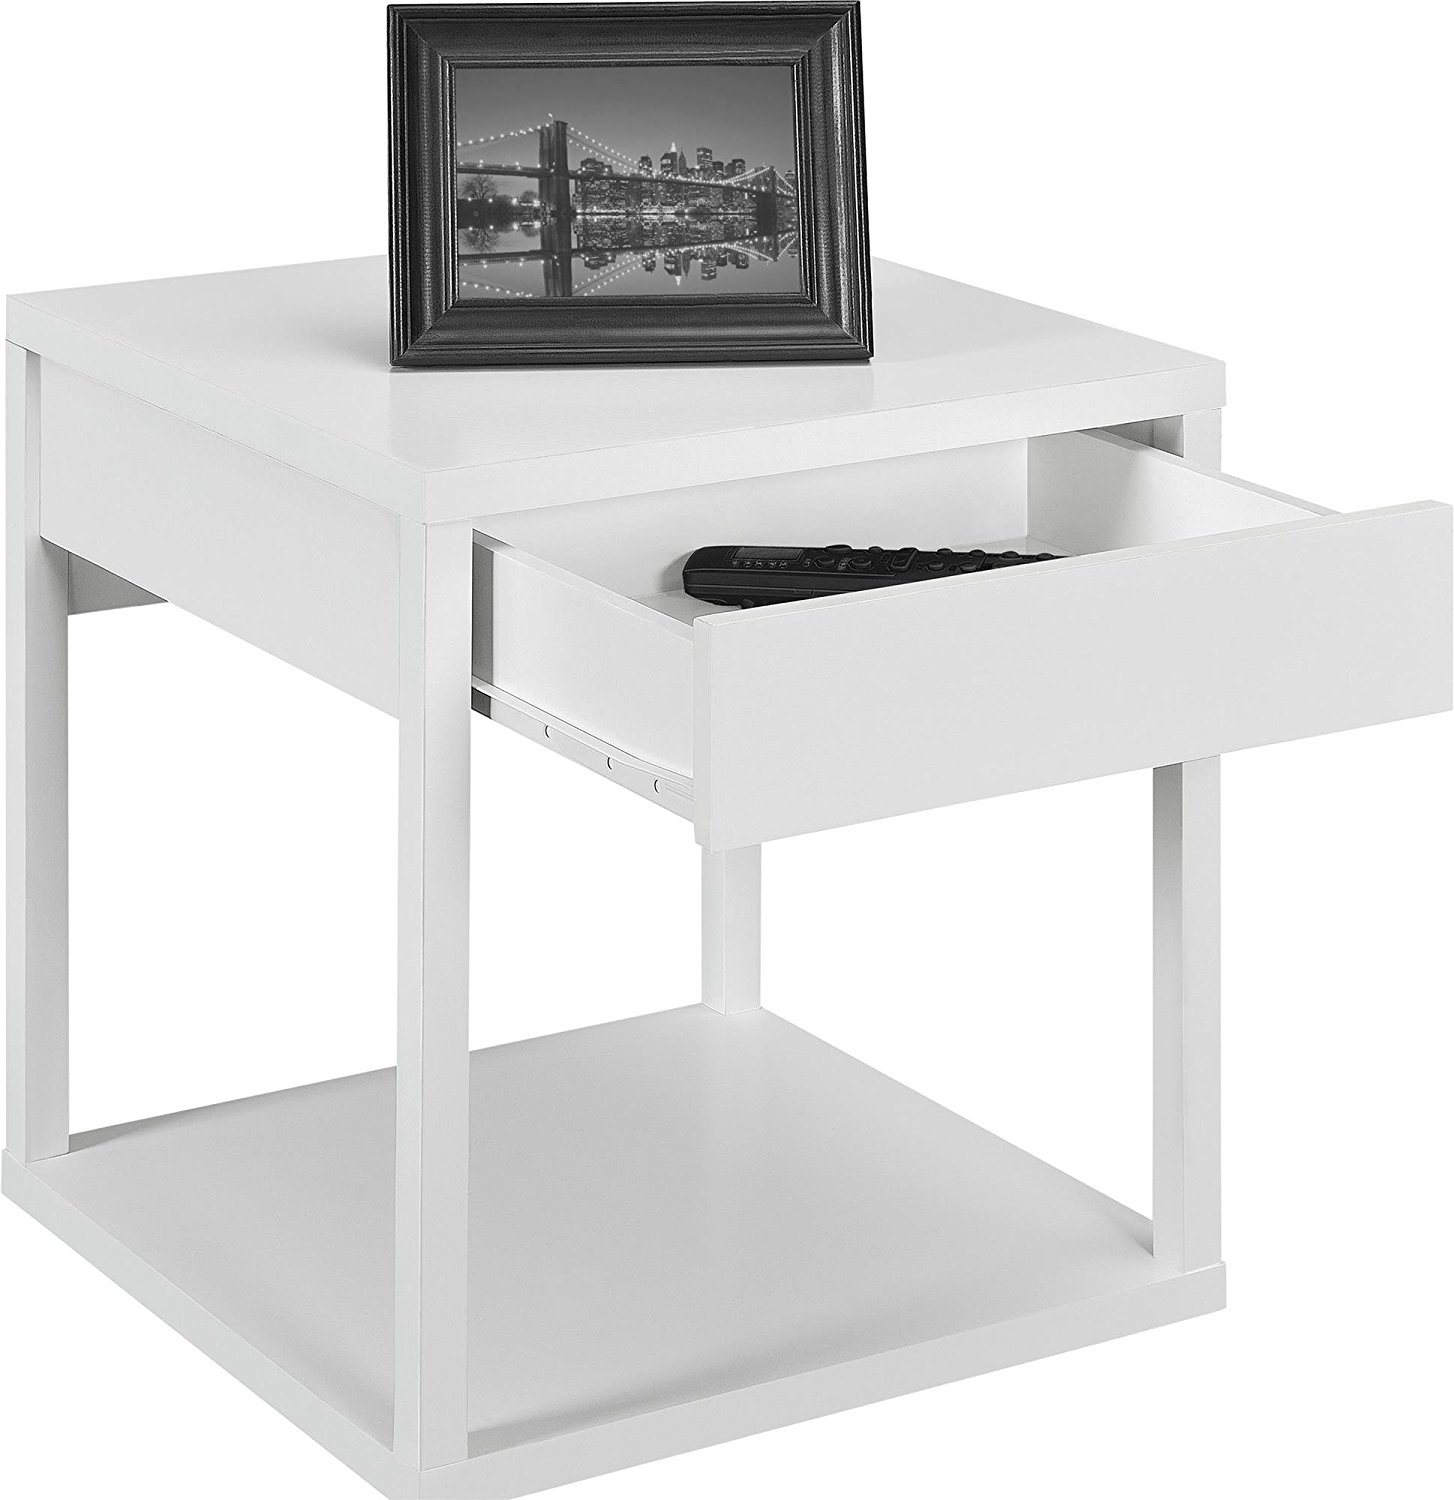 fresh white end table with drawer margate threshold target storage parson kitchen dining decor ikea for living room dark wood top basket magazine rack charging station glass door